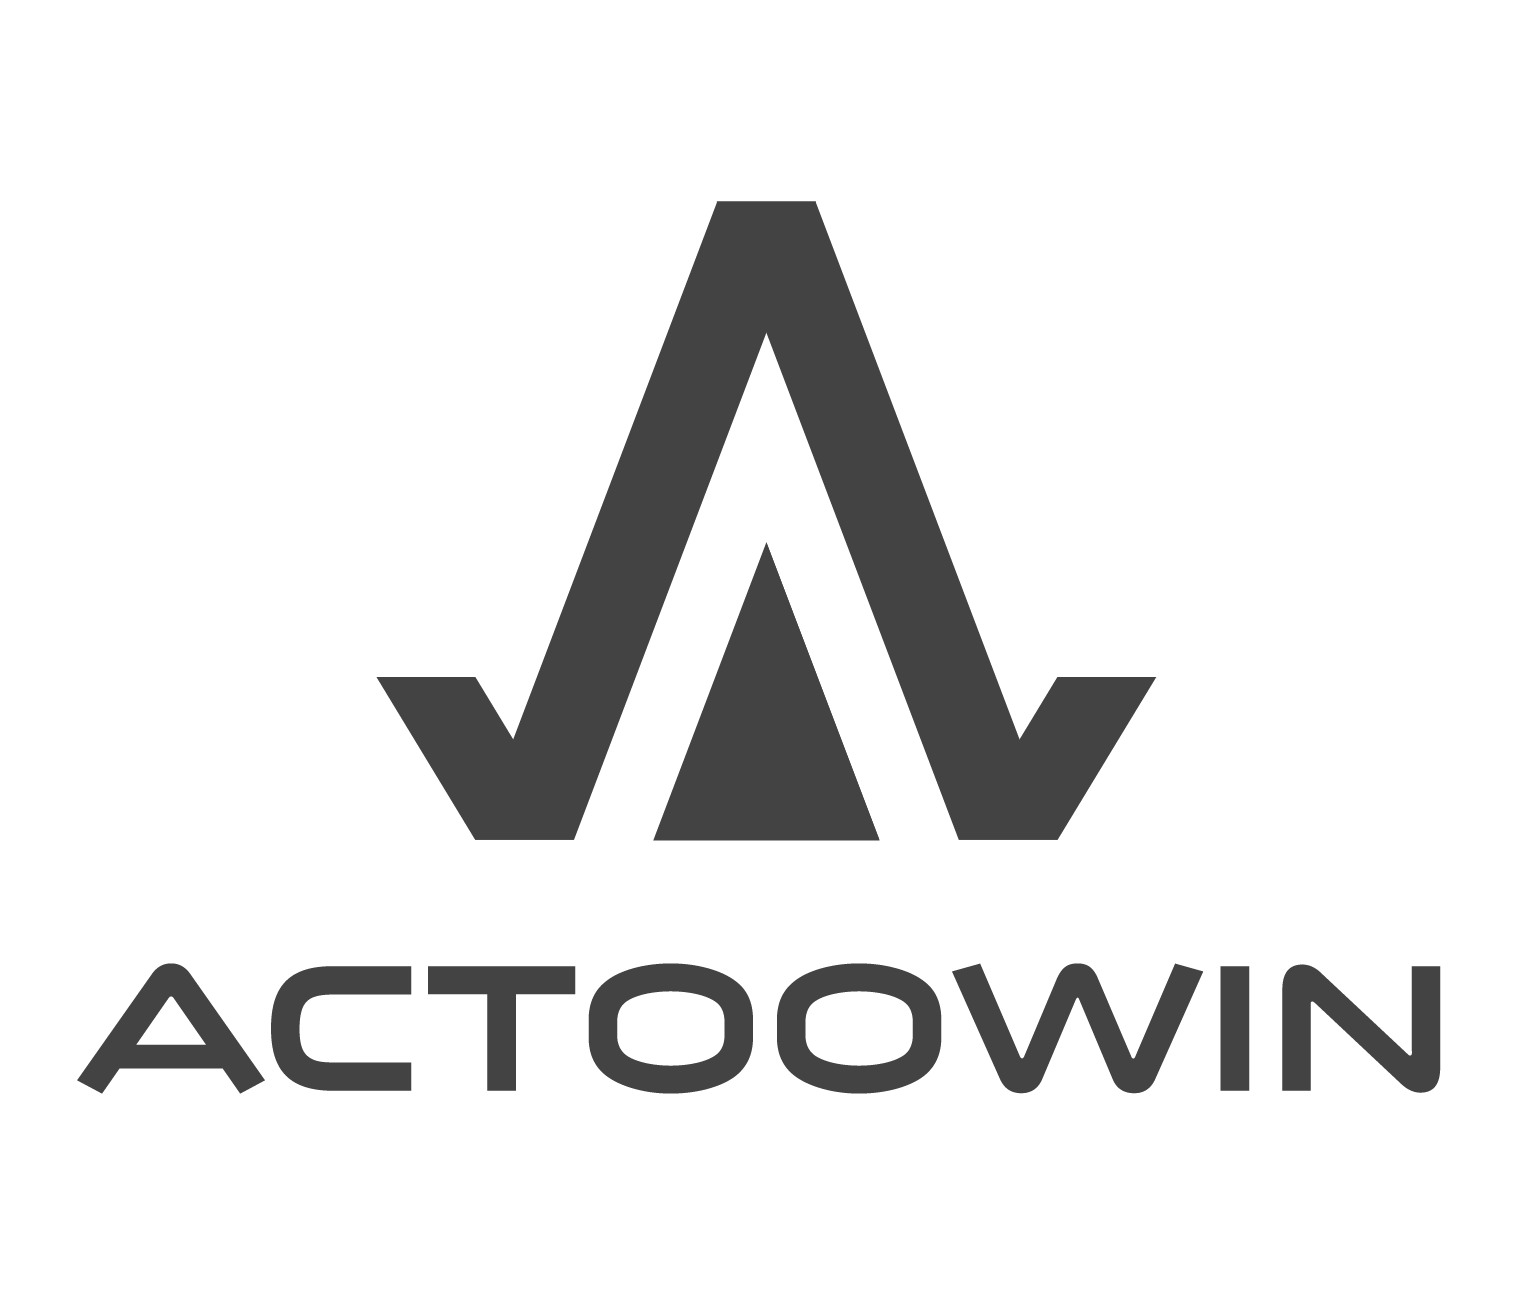 actoowin logo black